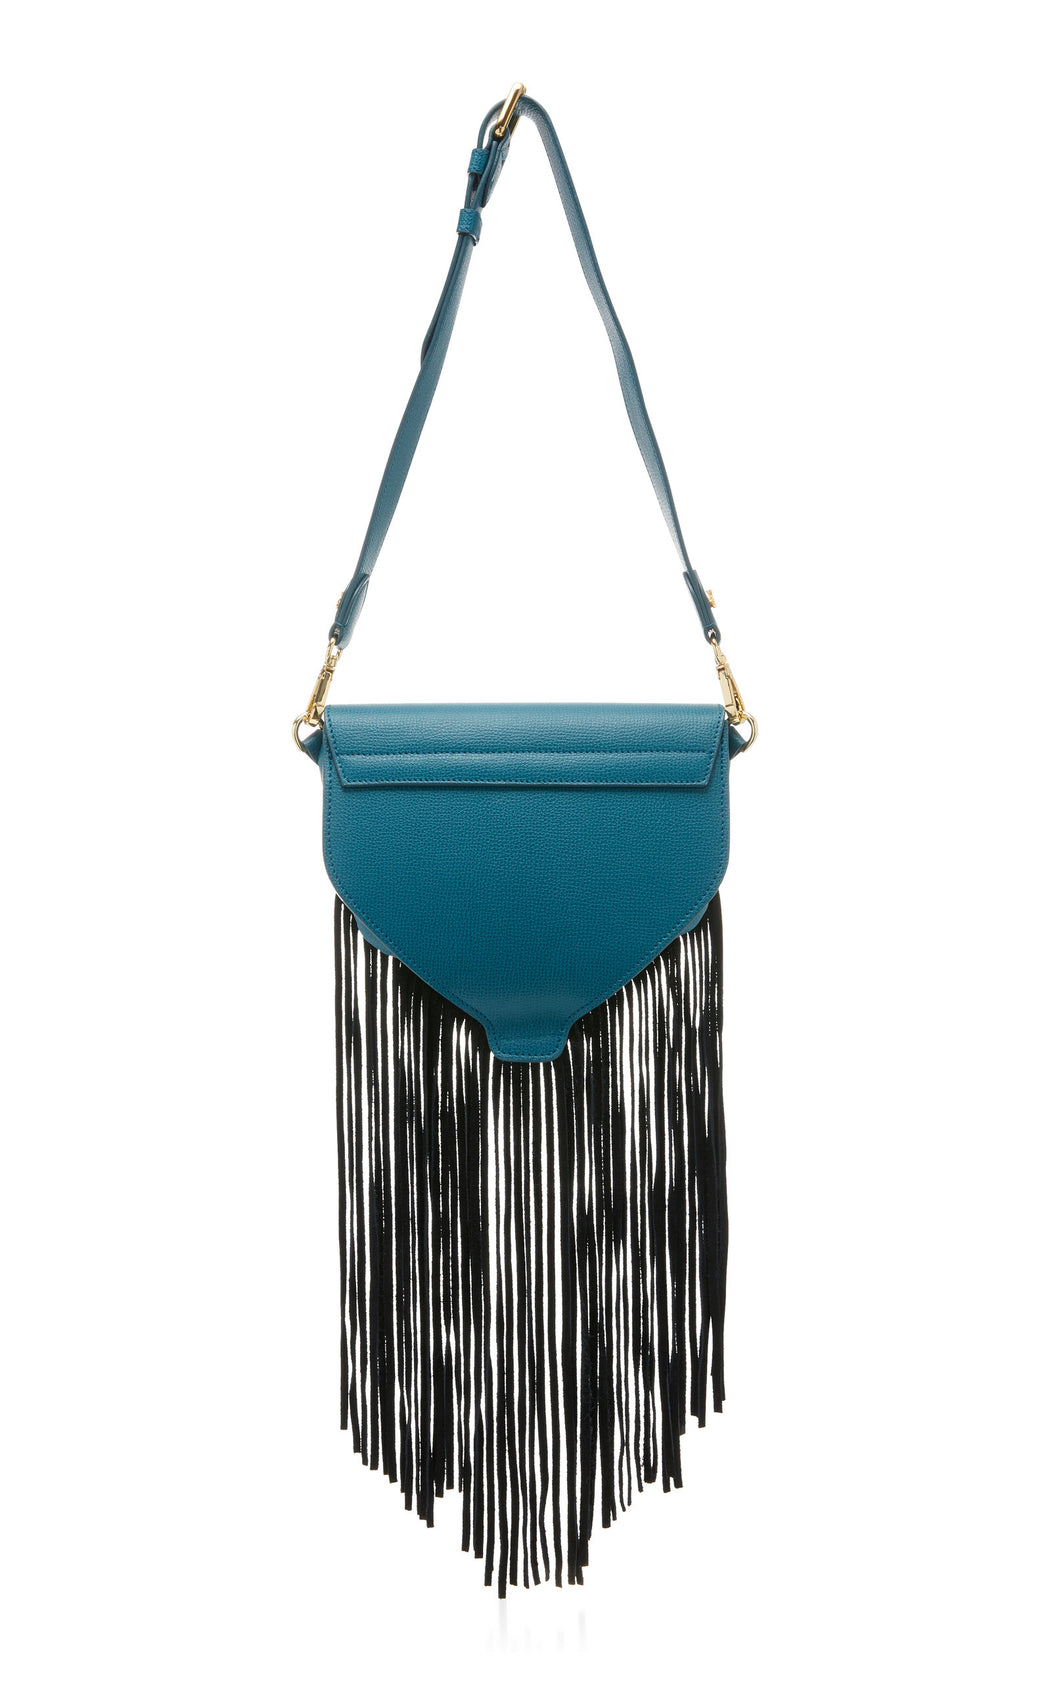 Fringe purse in teal leather